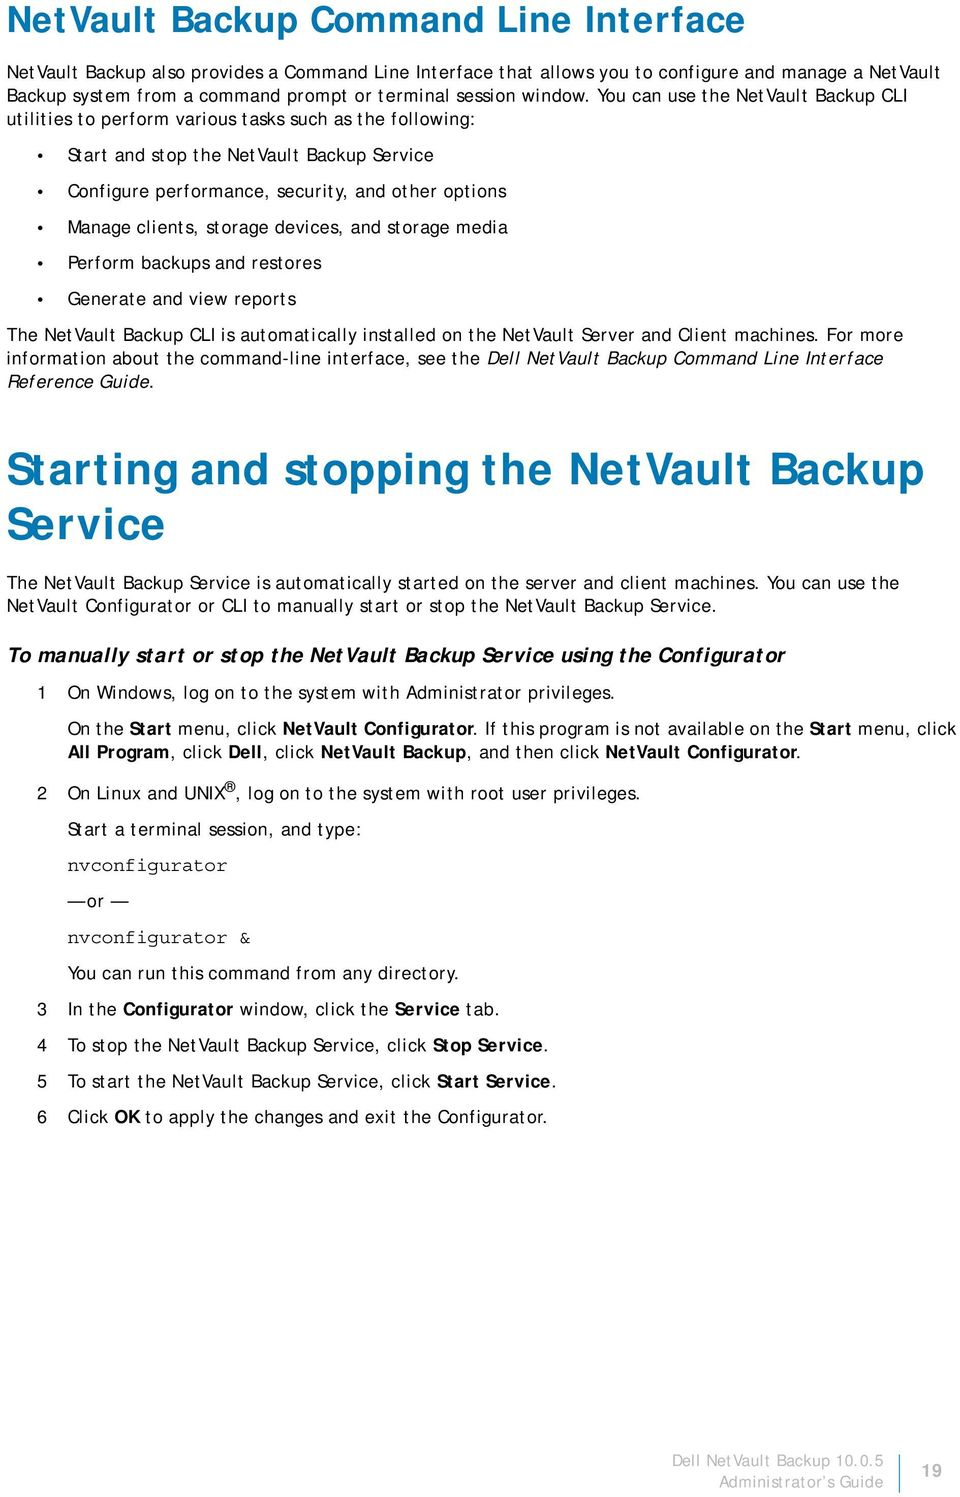 You can use the NetVault Backup CLI utilities to perform various tasks such as the following: Start and stop the NetVault Backup Service Configure performance, security, and other options Manage